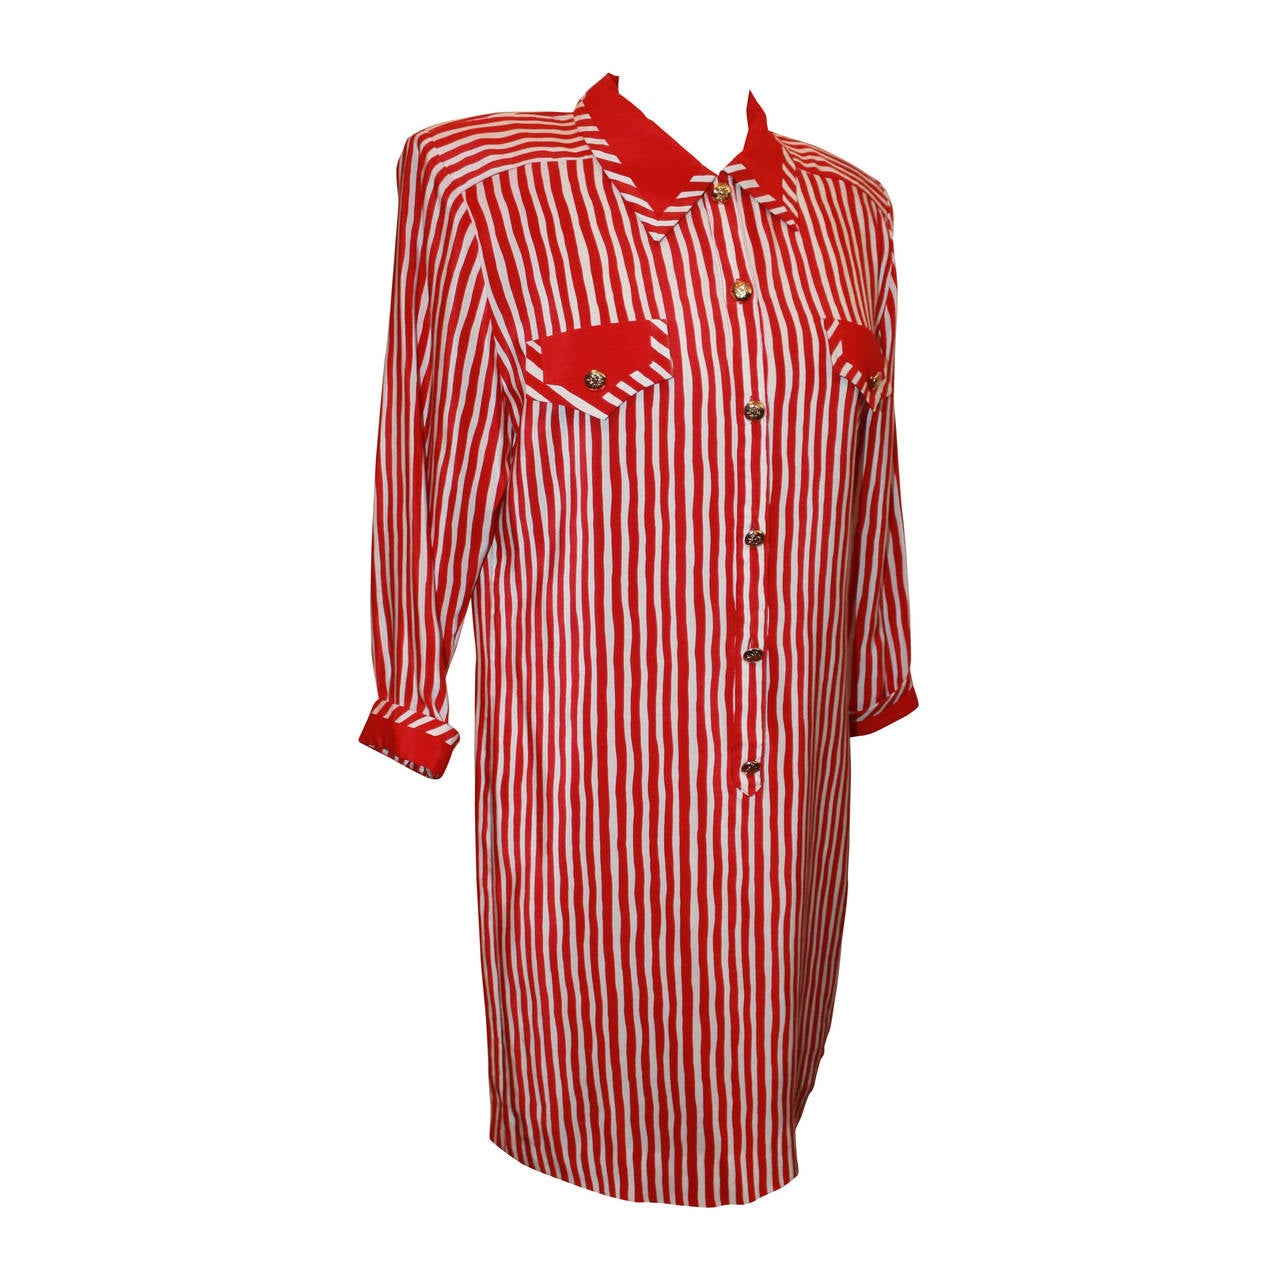 Vintage 1960s Adolfo Red and White Stripe Long Shirt Dress - M 1